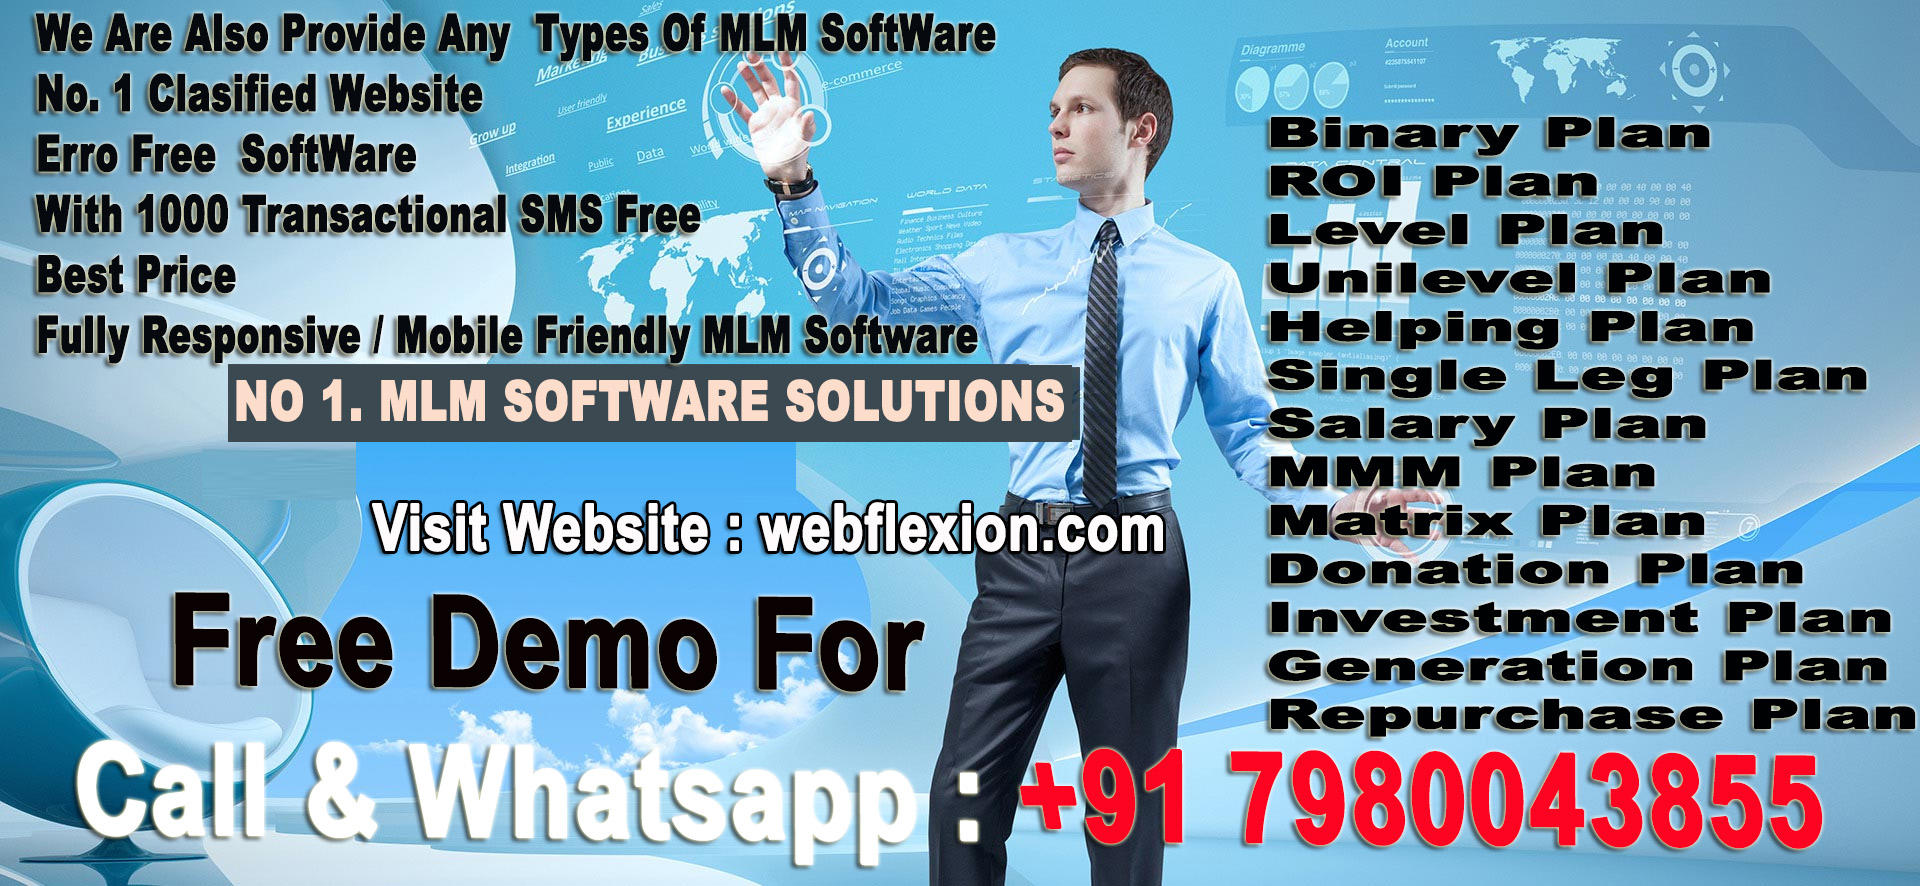 MLM SOFTWARE GENUINE WORK & Best Price. CALL & Whatsaap No: +917980043855